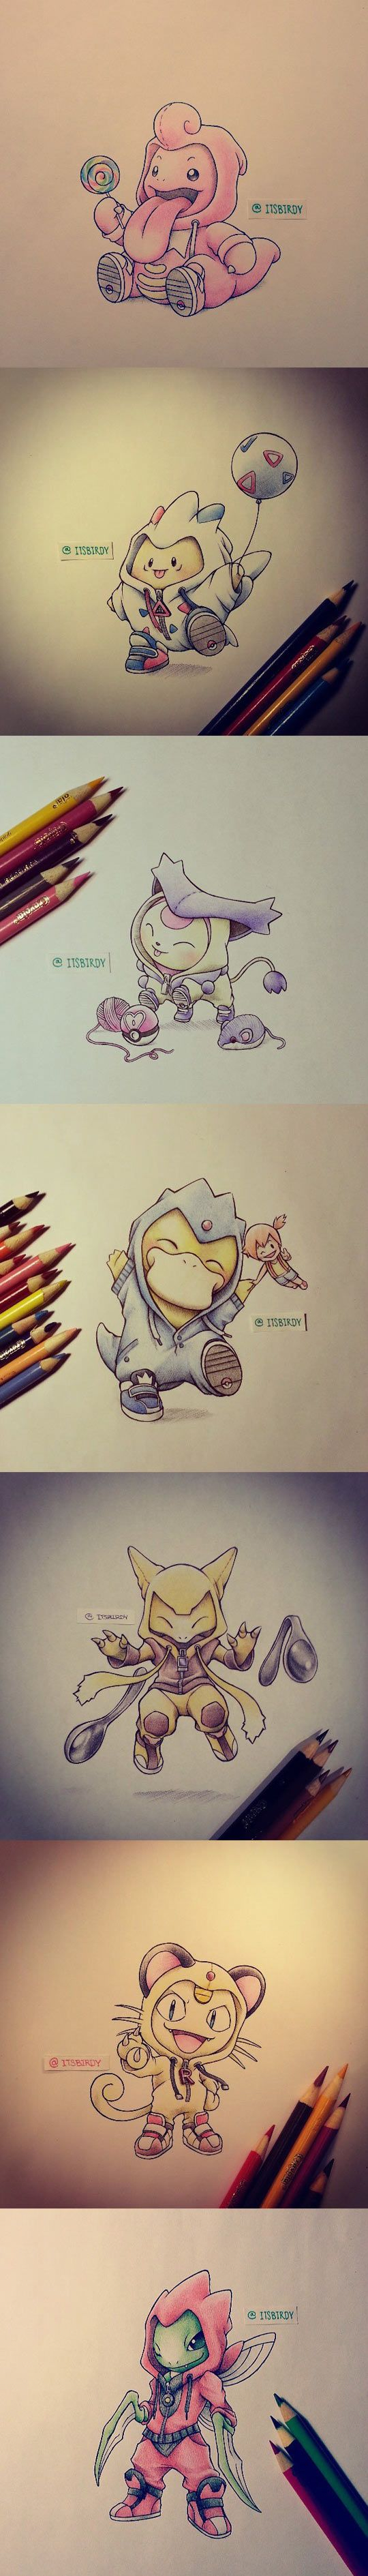 Pokemon Wearing Evolution Costumes Awesome Stuff I Need To Save